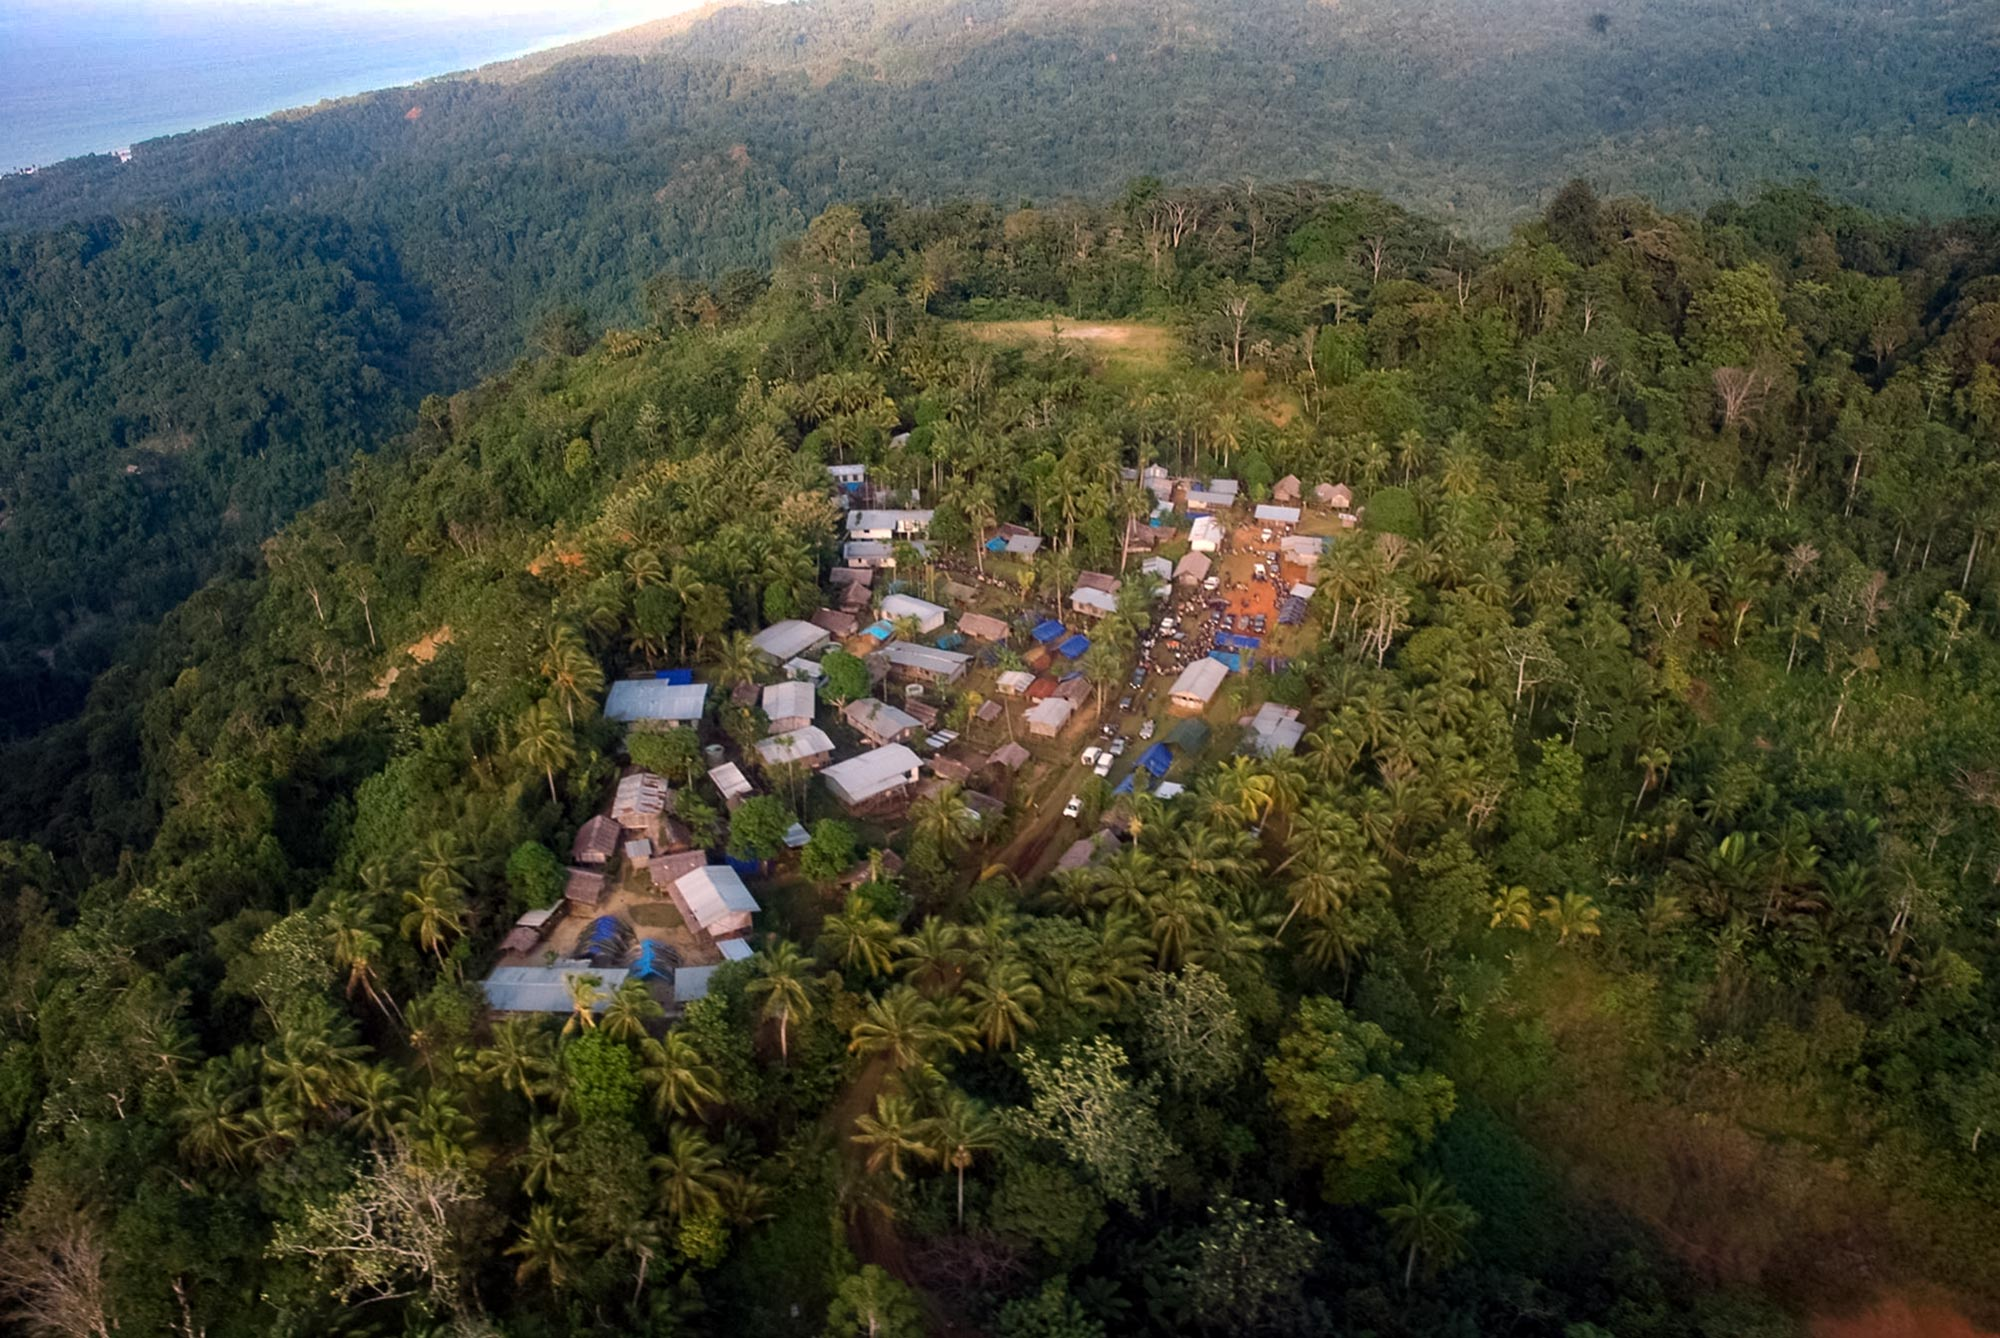 With its metal roofs on buildings, the village of Wautogik is relatively well-off for Papua New Guinea, according to anthropologist Lise Dobrin. (Photo courtesy of Lise Dobrin)